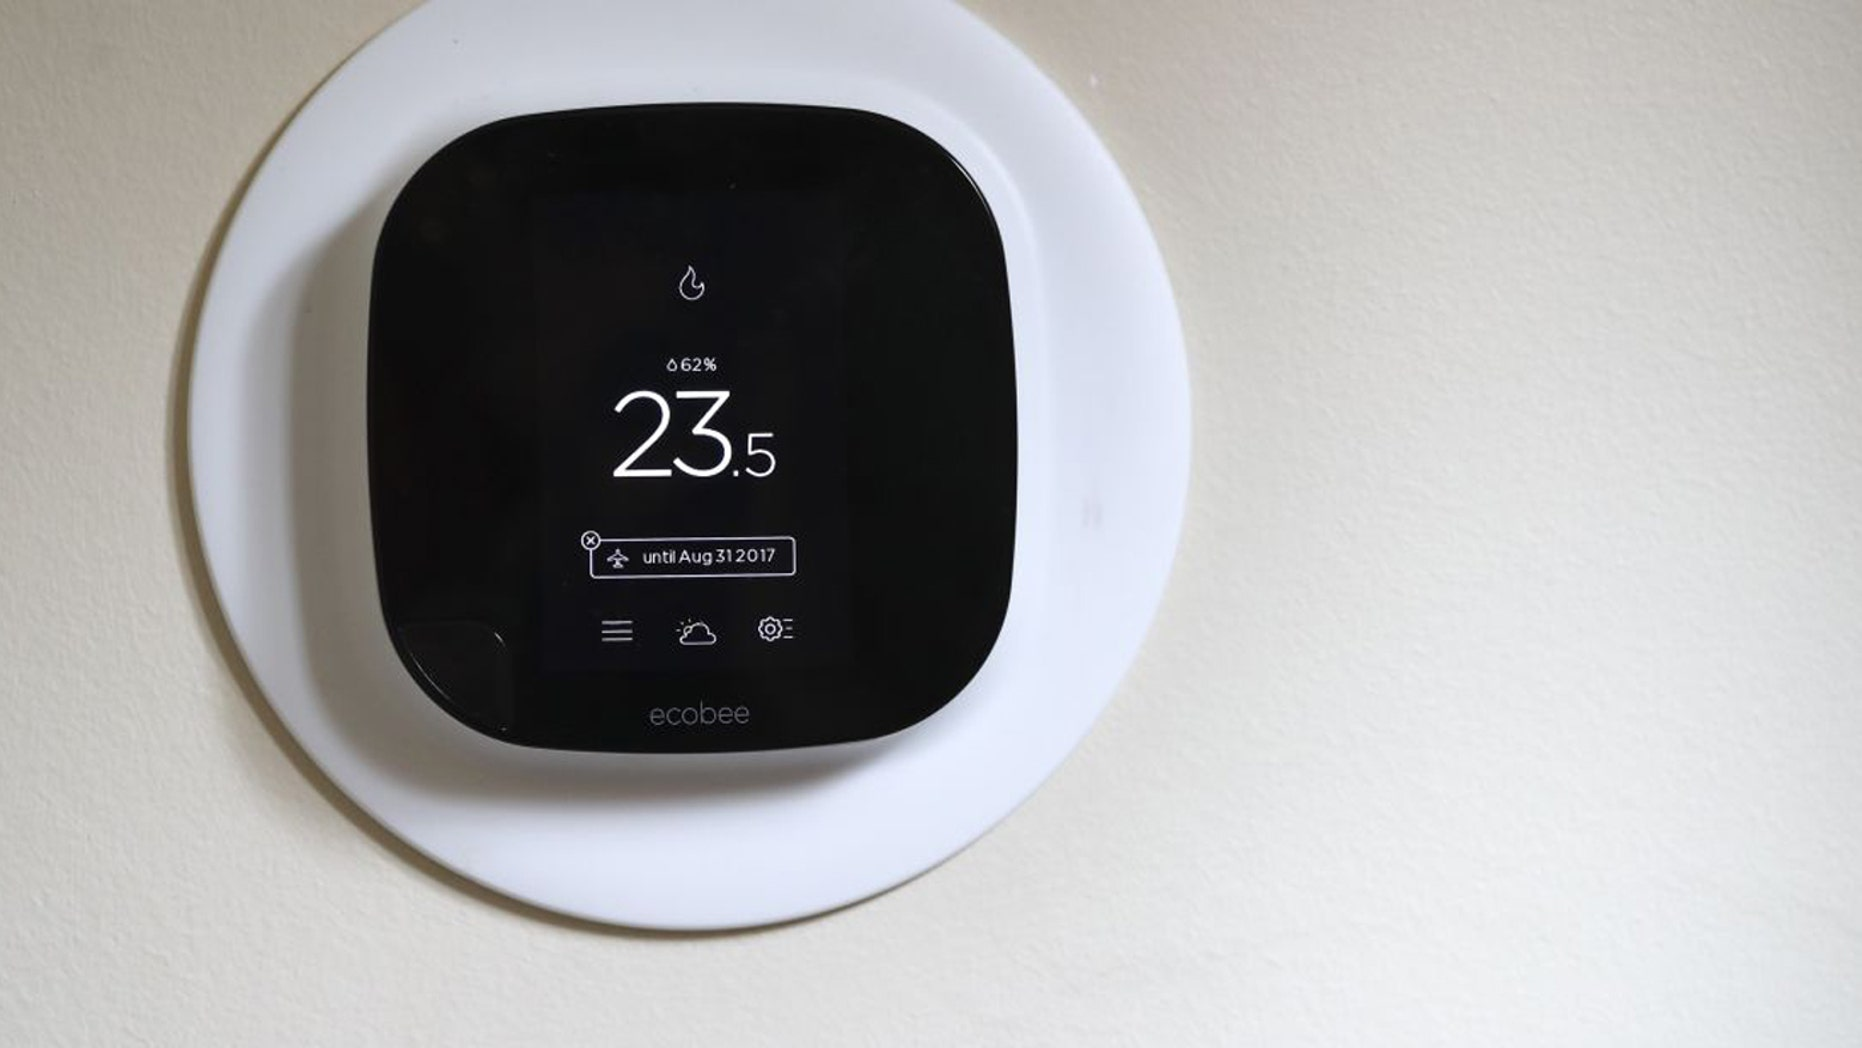 Amazon joined a $61 million funding round into smart thermostat maker ecobee Inc. last March.